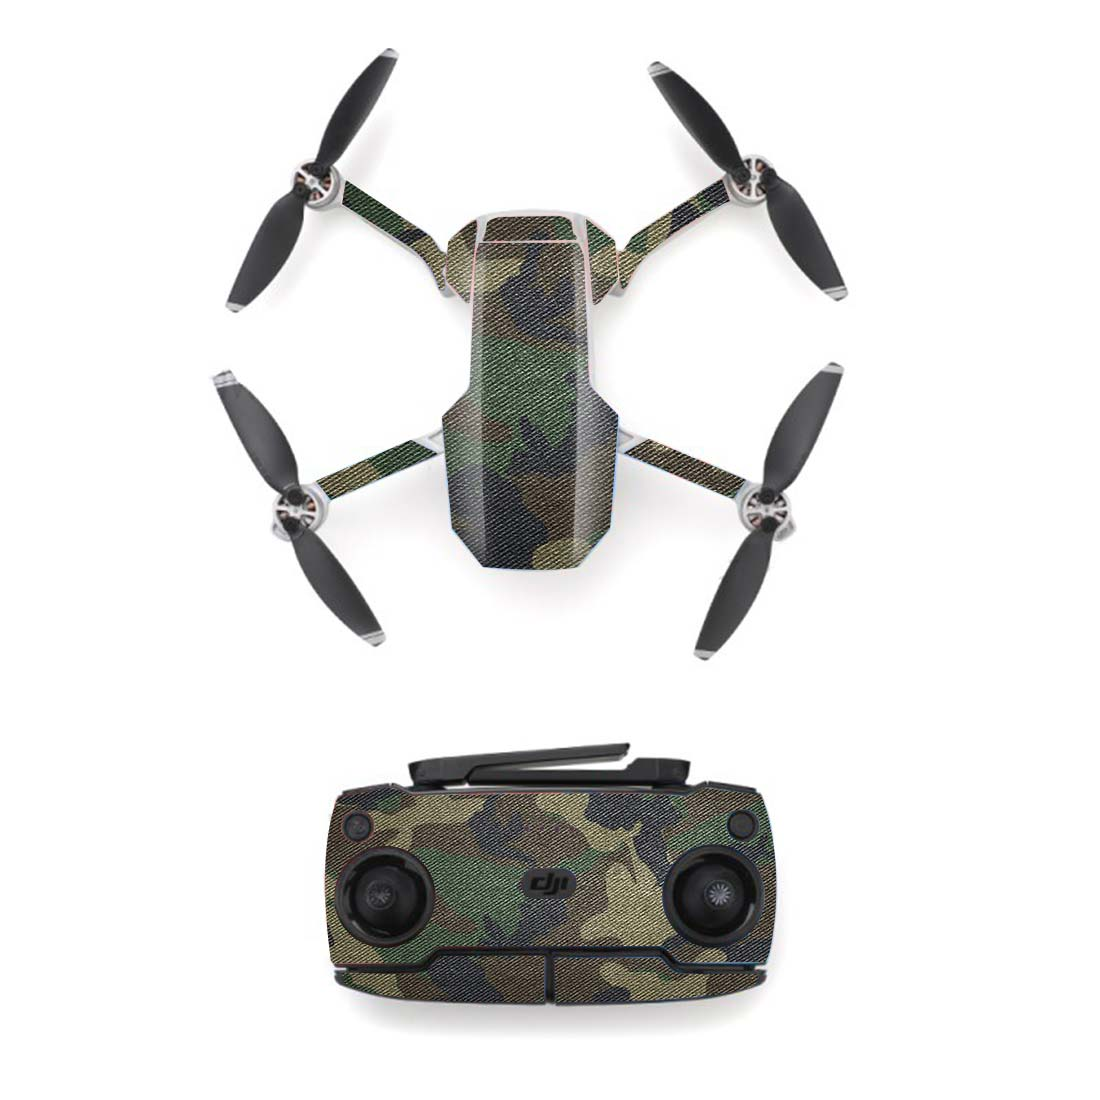 Camo Camouflage Style Skin Sticker For DJI Mavic Mini Drone And Remote Controller Decal Vinyl Skins Cover M0047